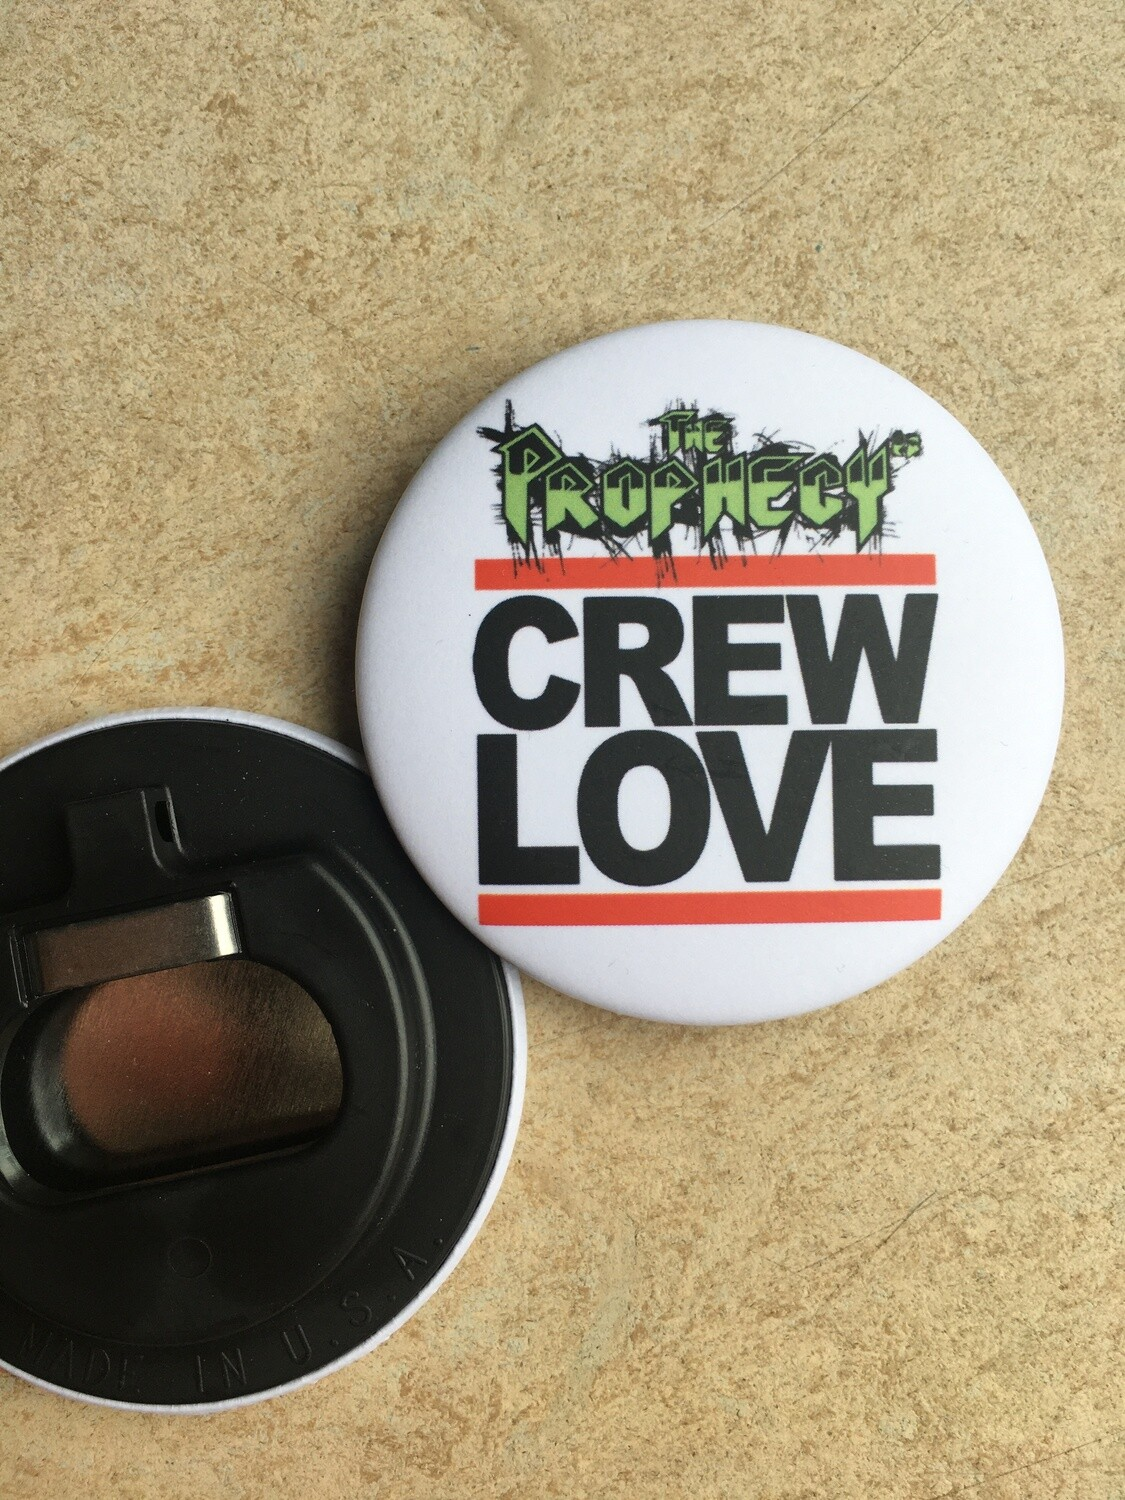 CREW LOVE - bottle opener / keychain